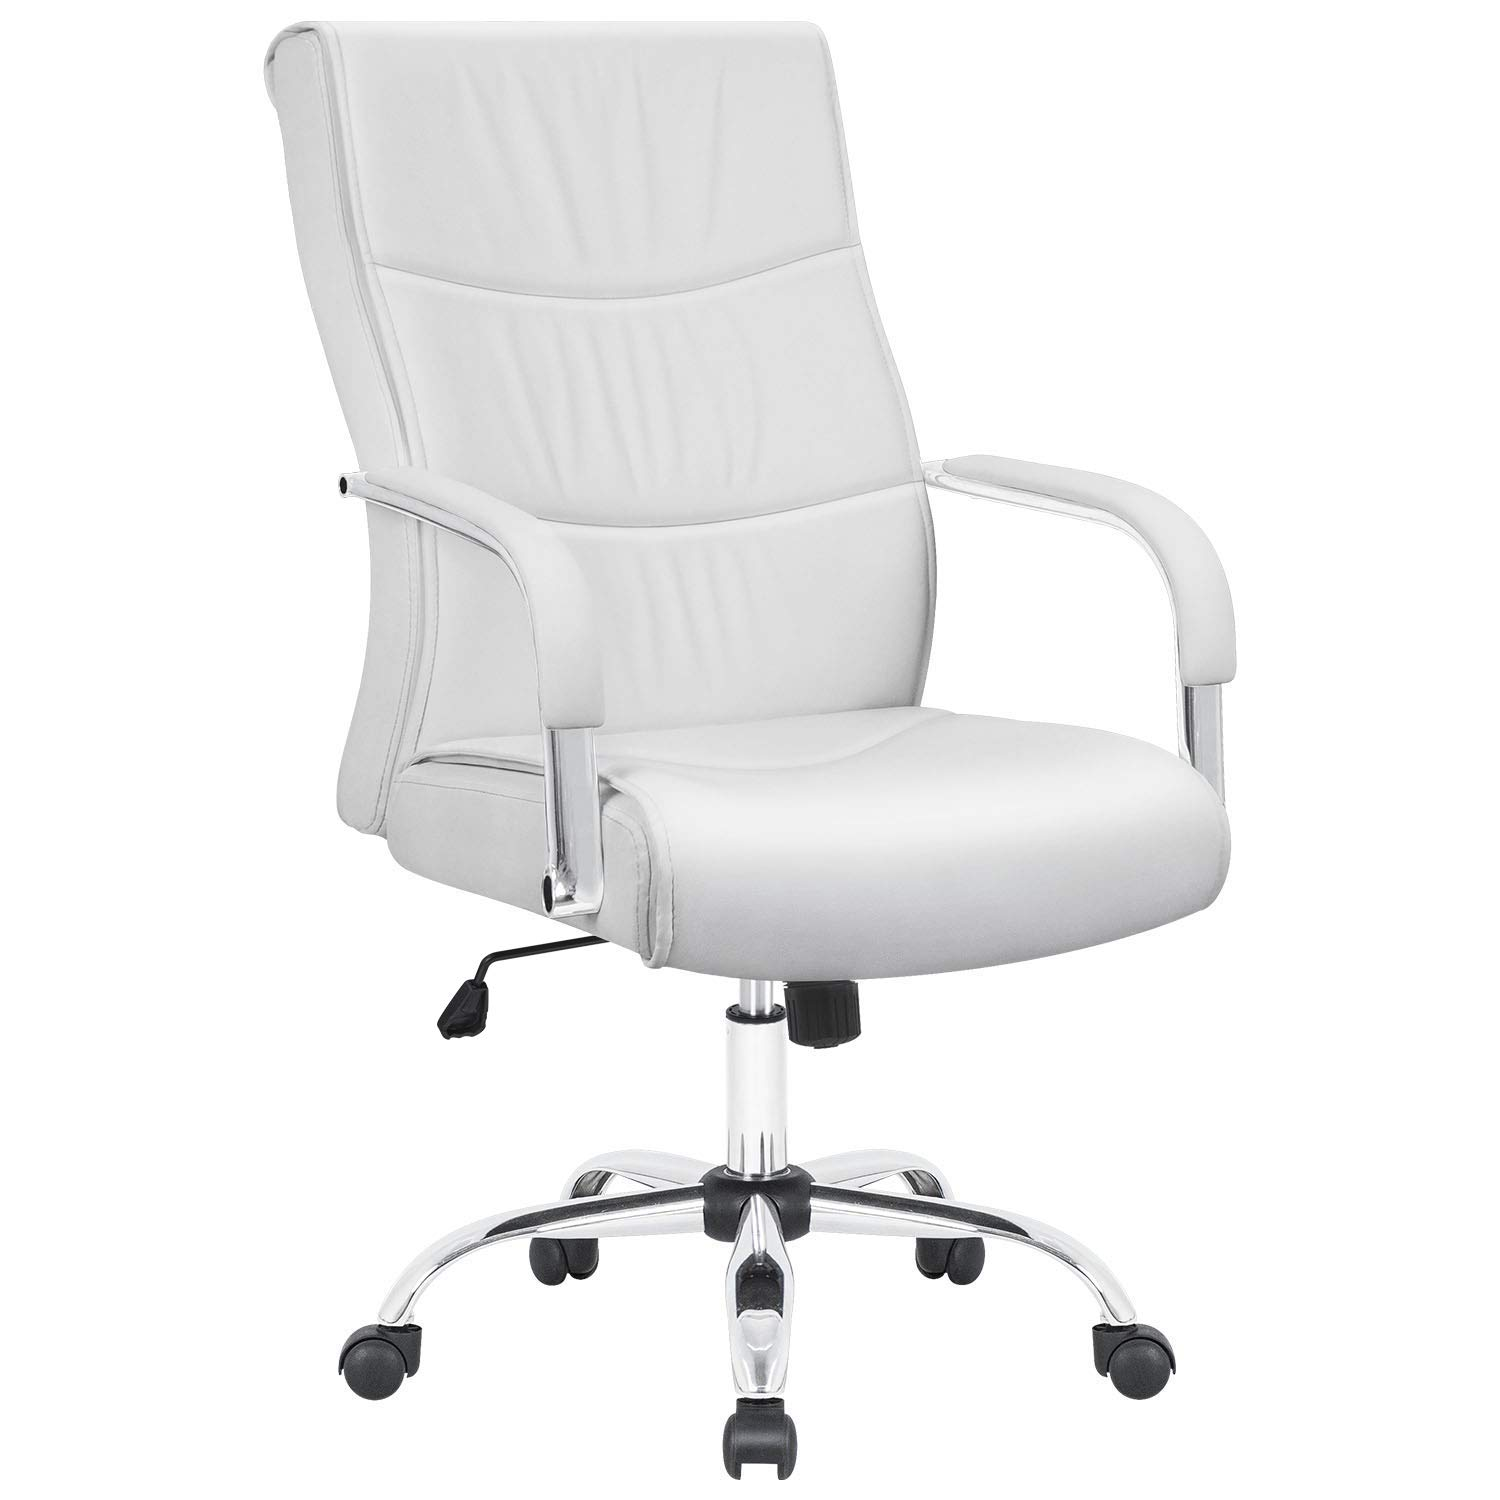 Furmax High Back Office Desk Chair Conference Leather Executive with Padded Armrests,Adjustable Ergonomic Swivel Task Chair with Lumbar Support White